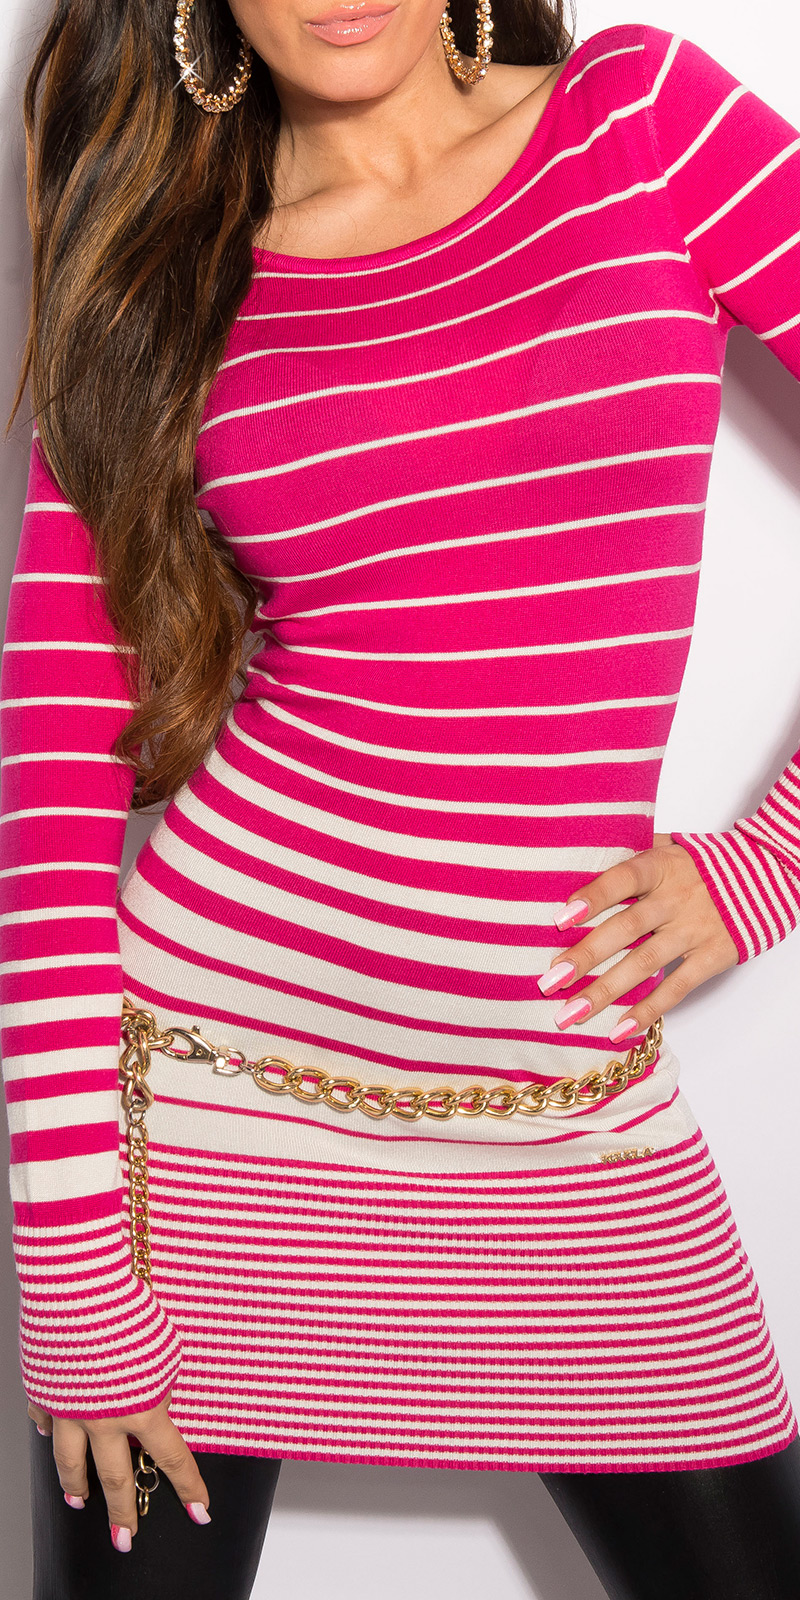 ookoucla_longsweater_with_zip__color_fuchsia_size_onesize_0000isf8007_pink_25_2